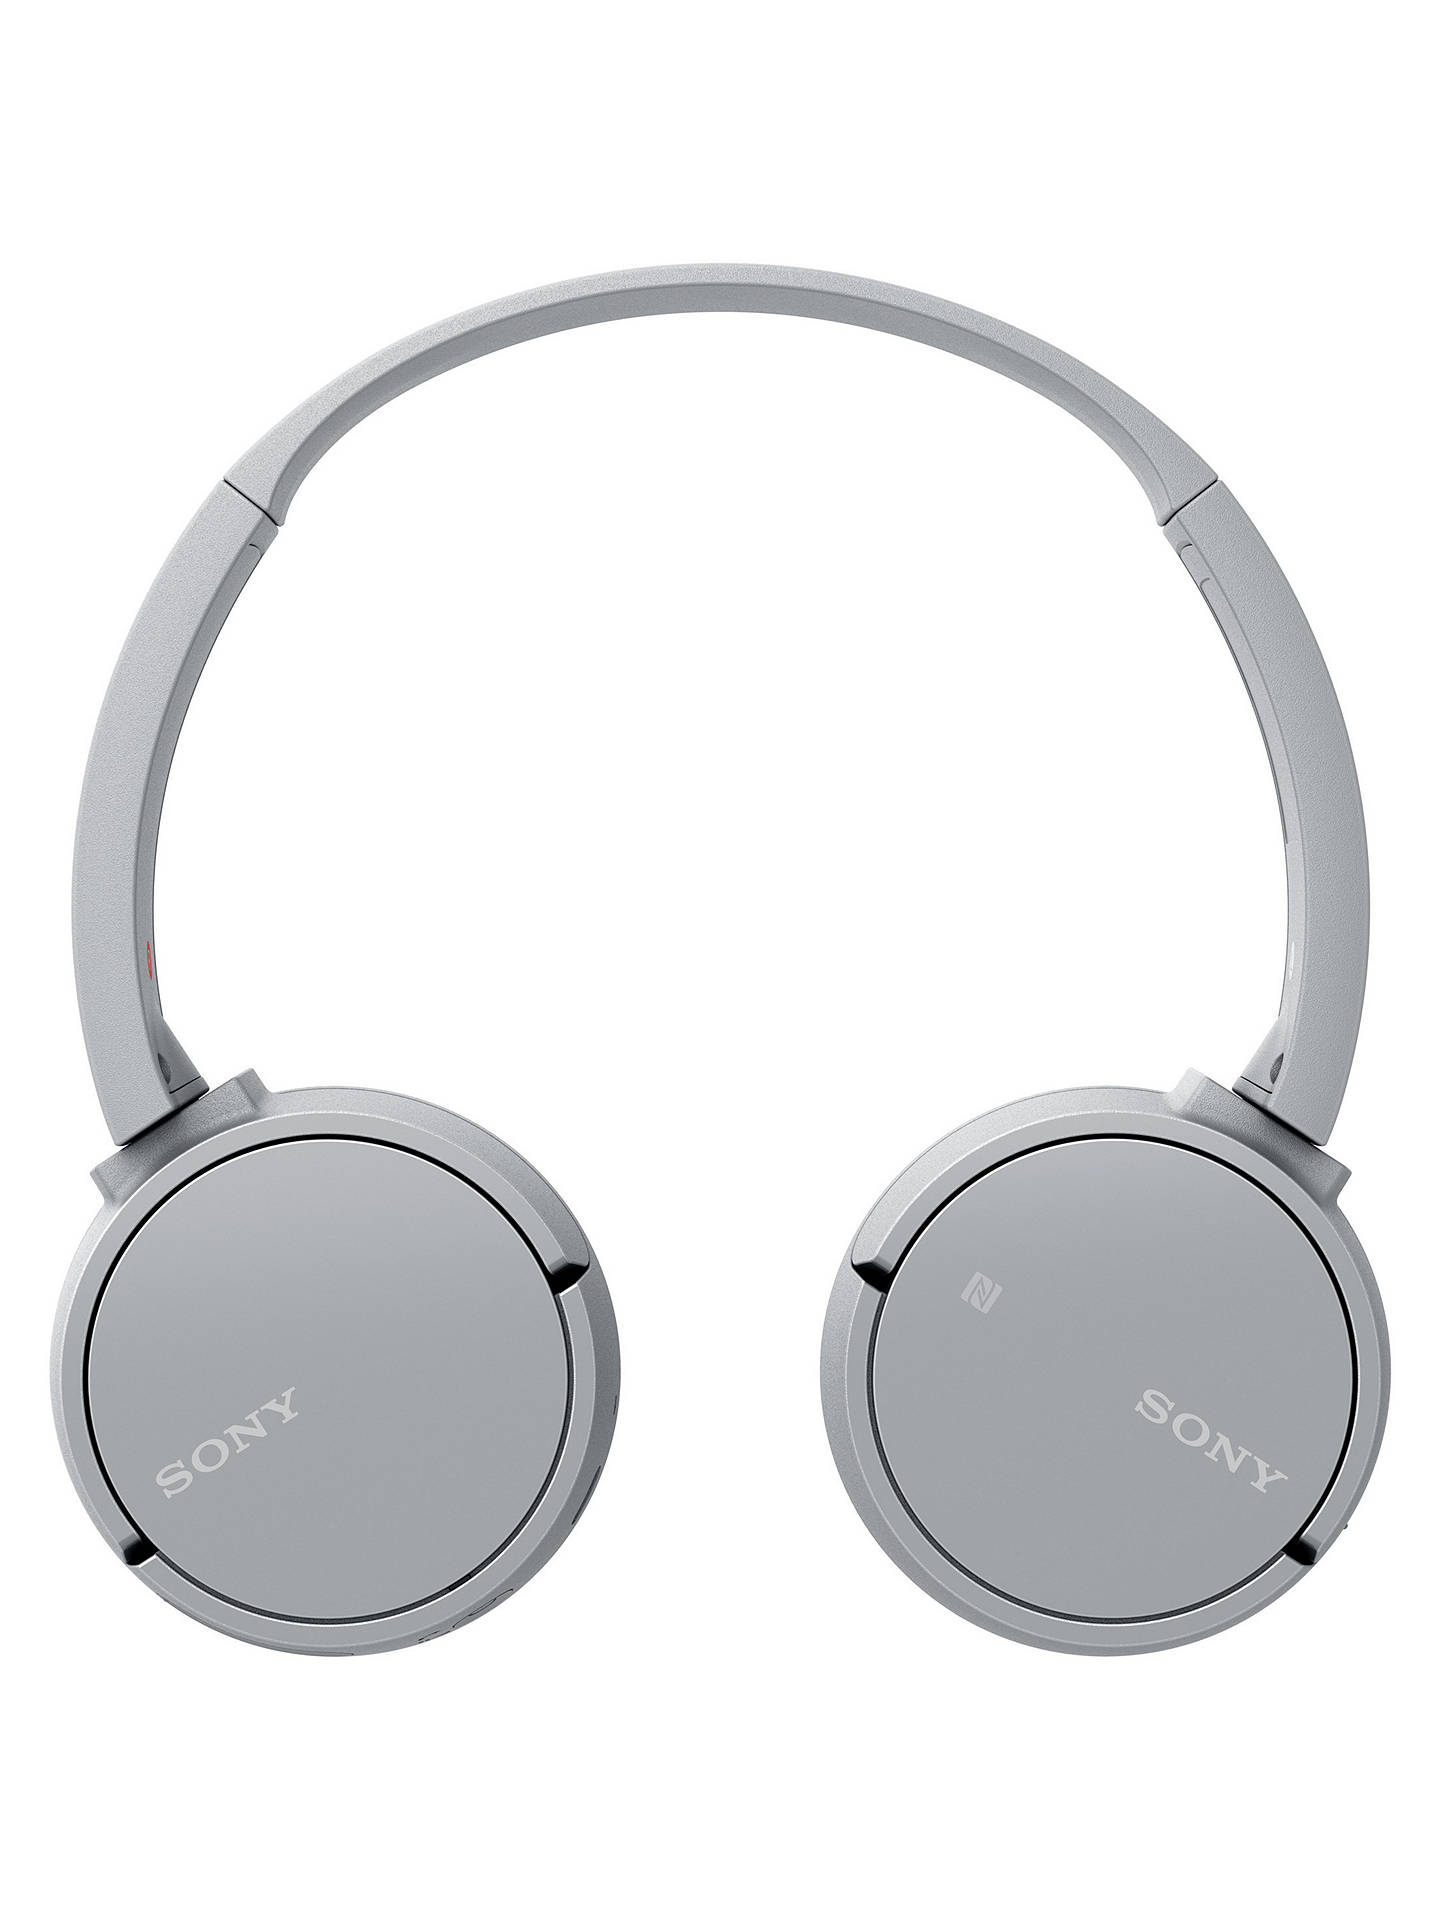 BuySony WH-CH500 Bluetooth NFC Wireless On-Ear Headphones with Mic/Remote, Grey Online at johnlewis.com